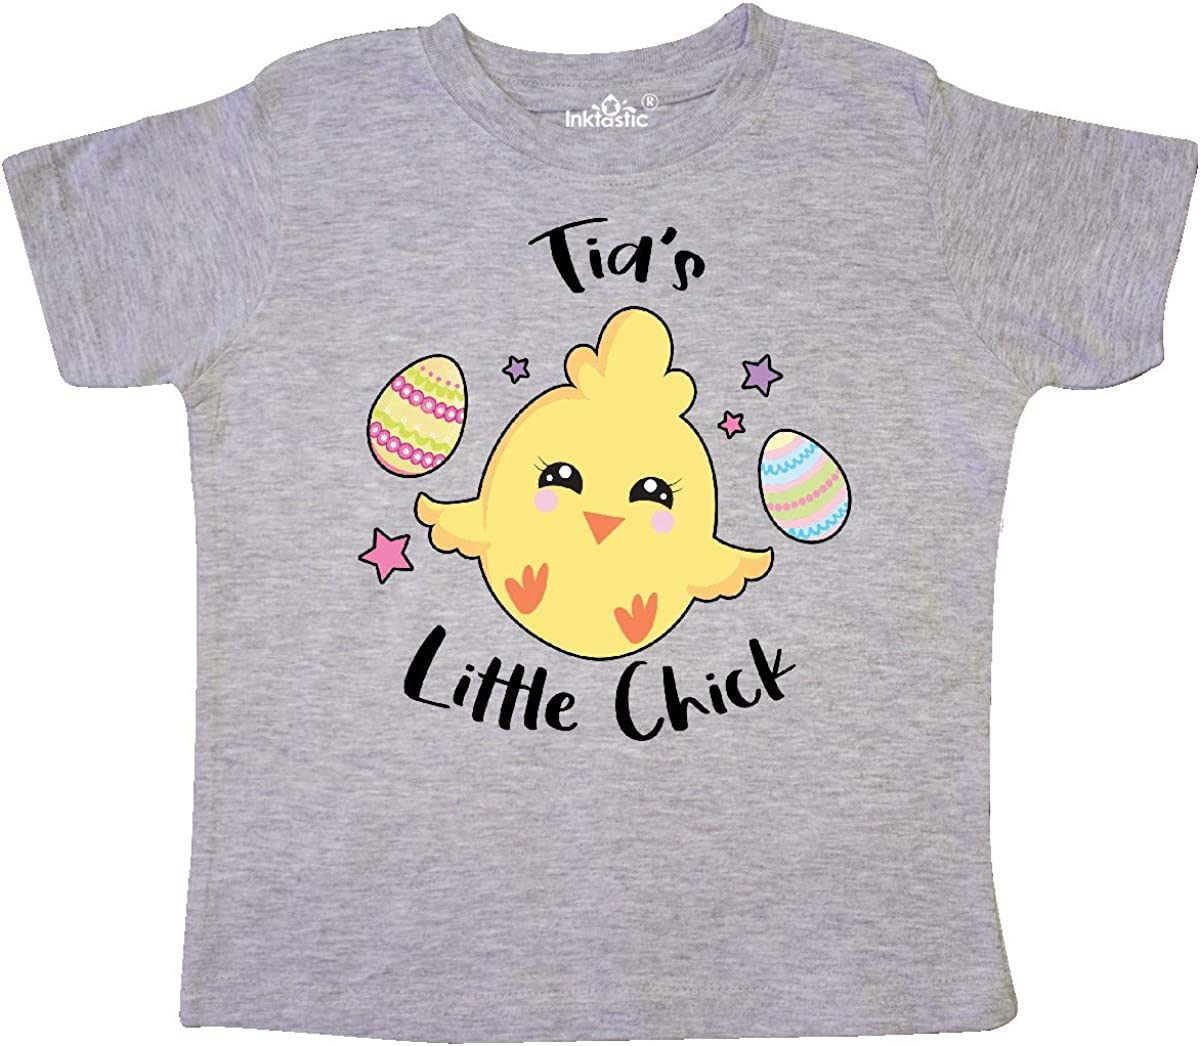 inktastic Happy Easter Tias Little Chick Toddler T-Shirt